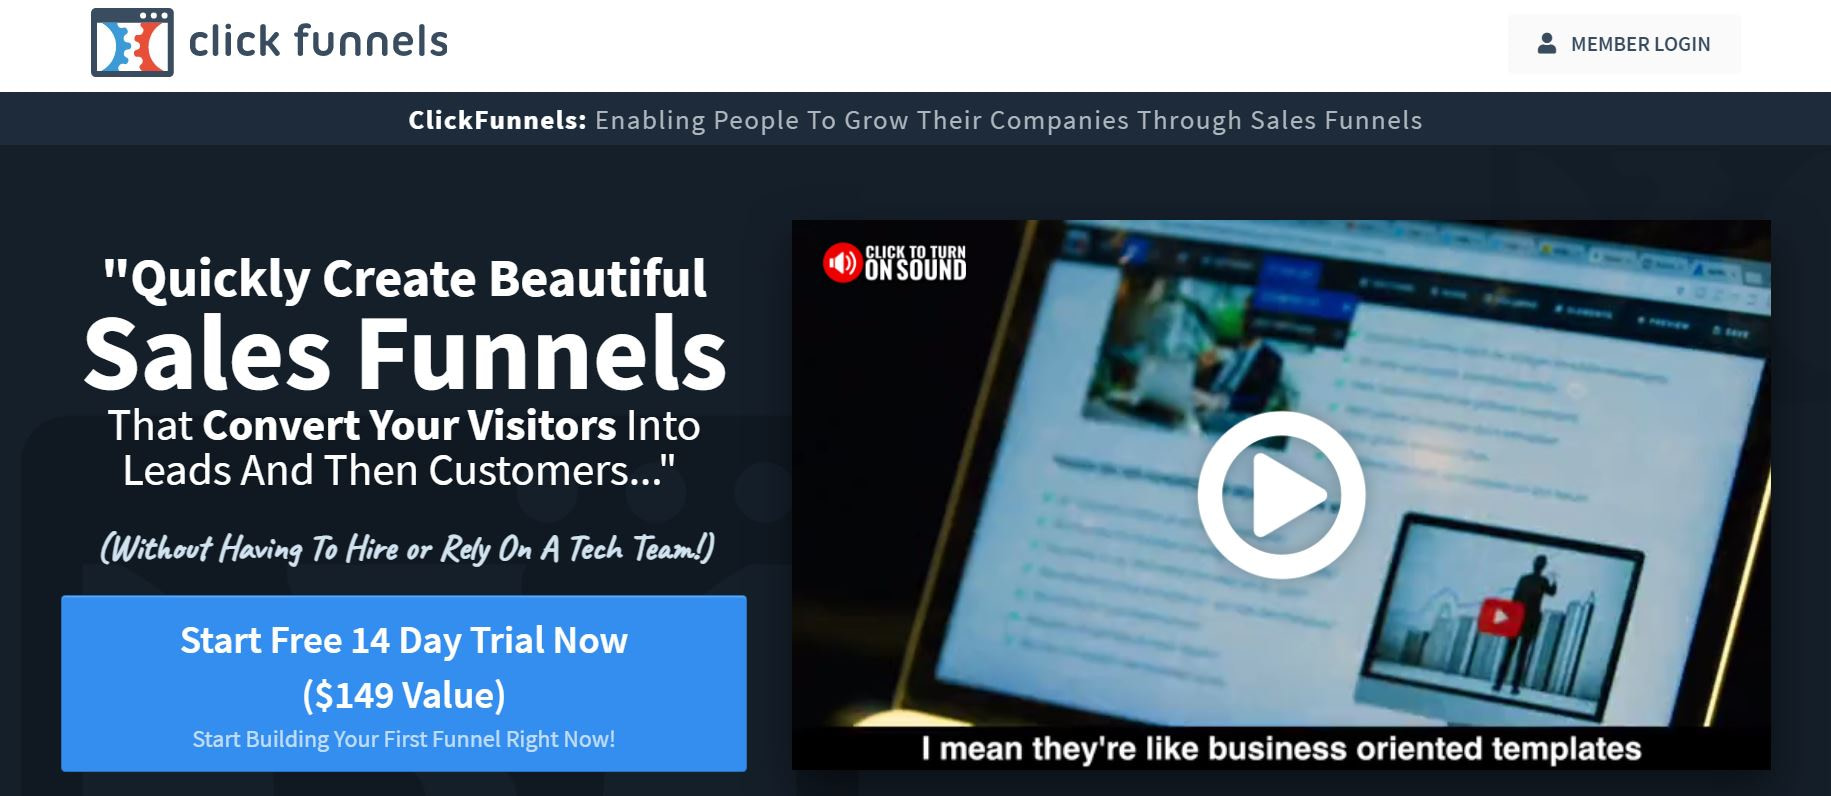 ClickFunnels is one of th ebest sales funnel tools